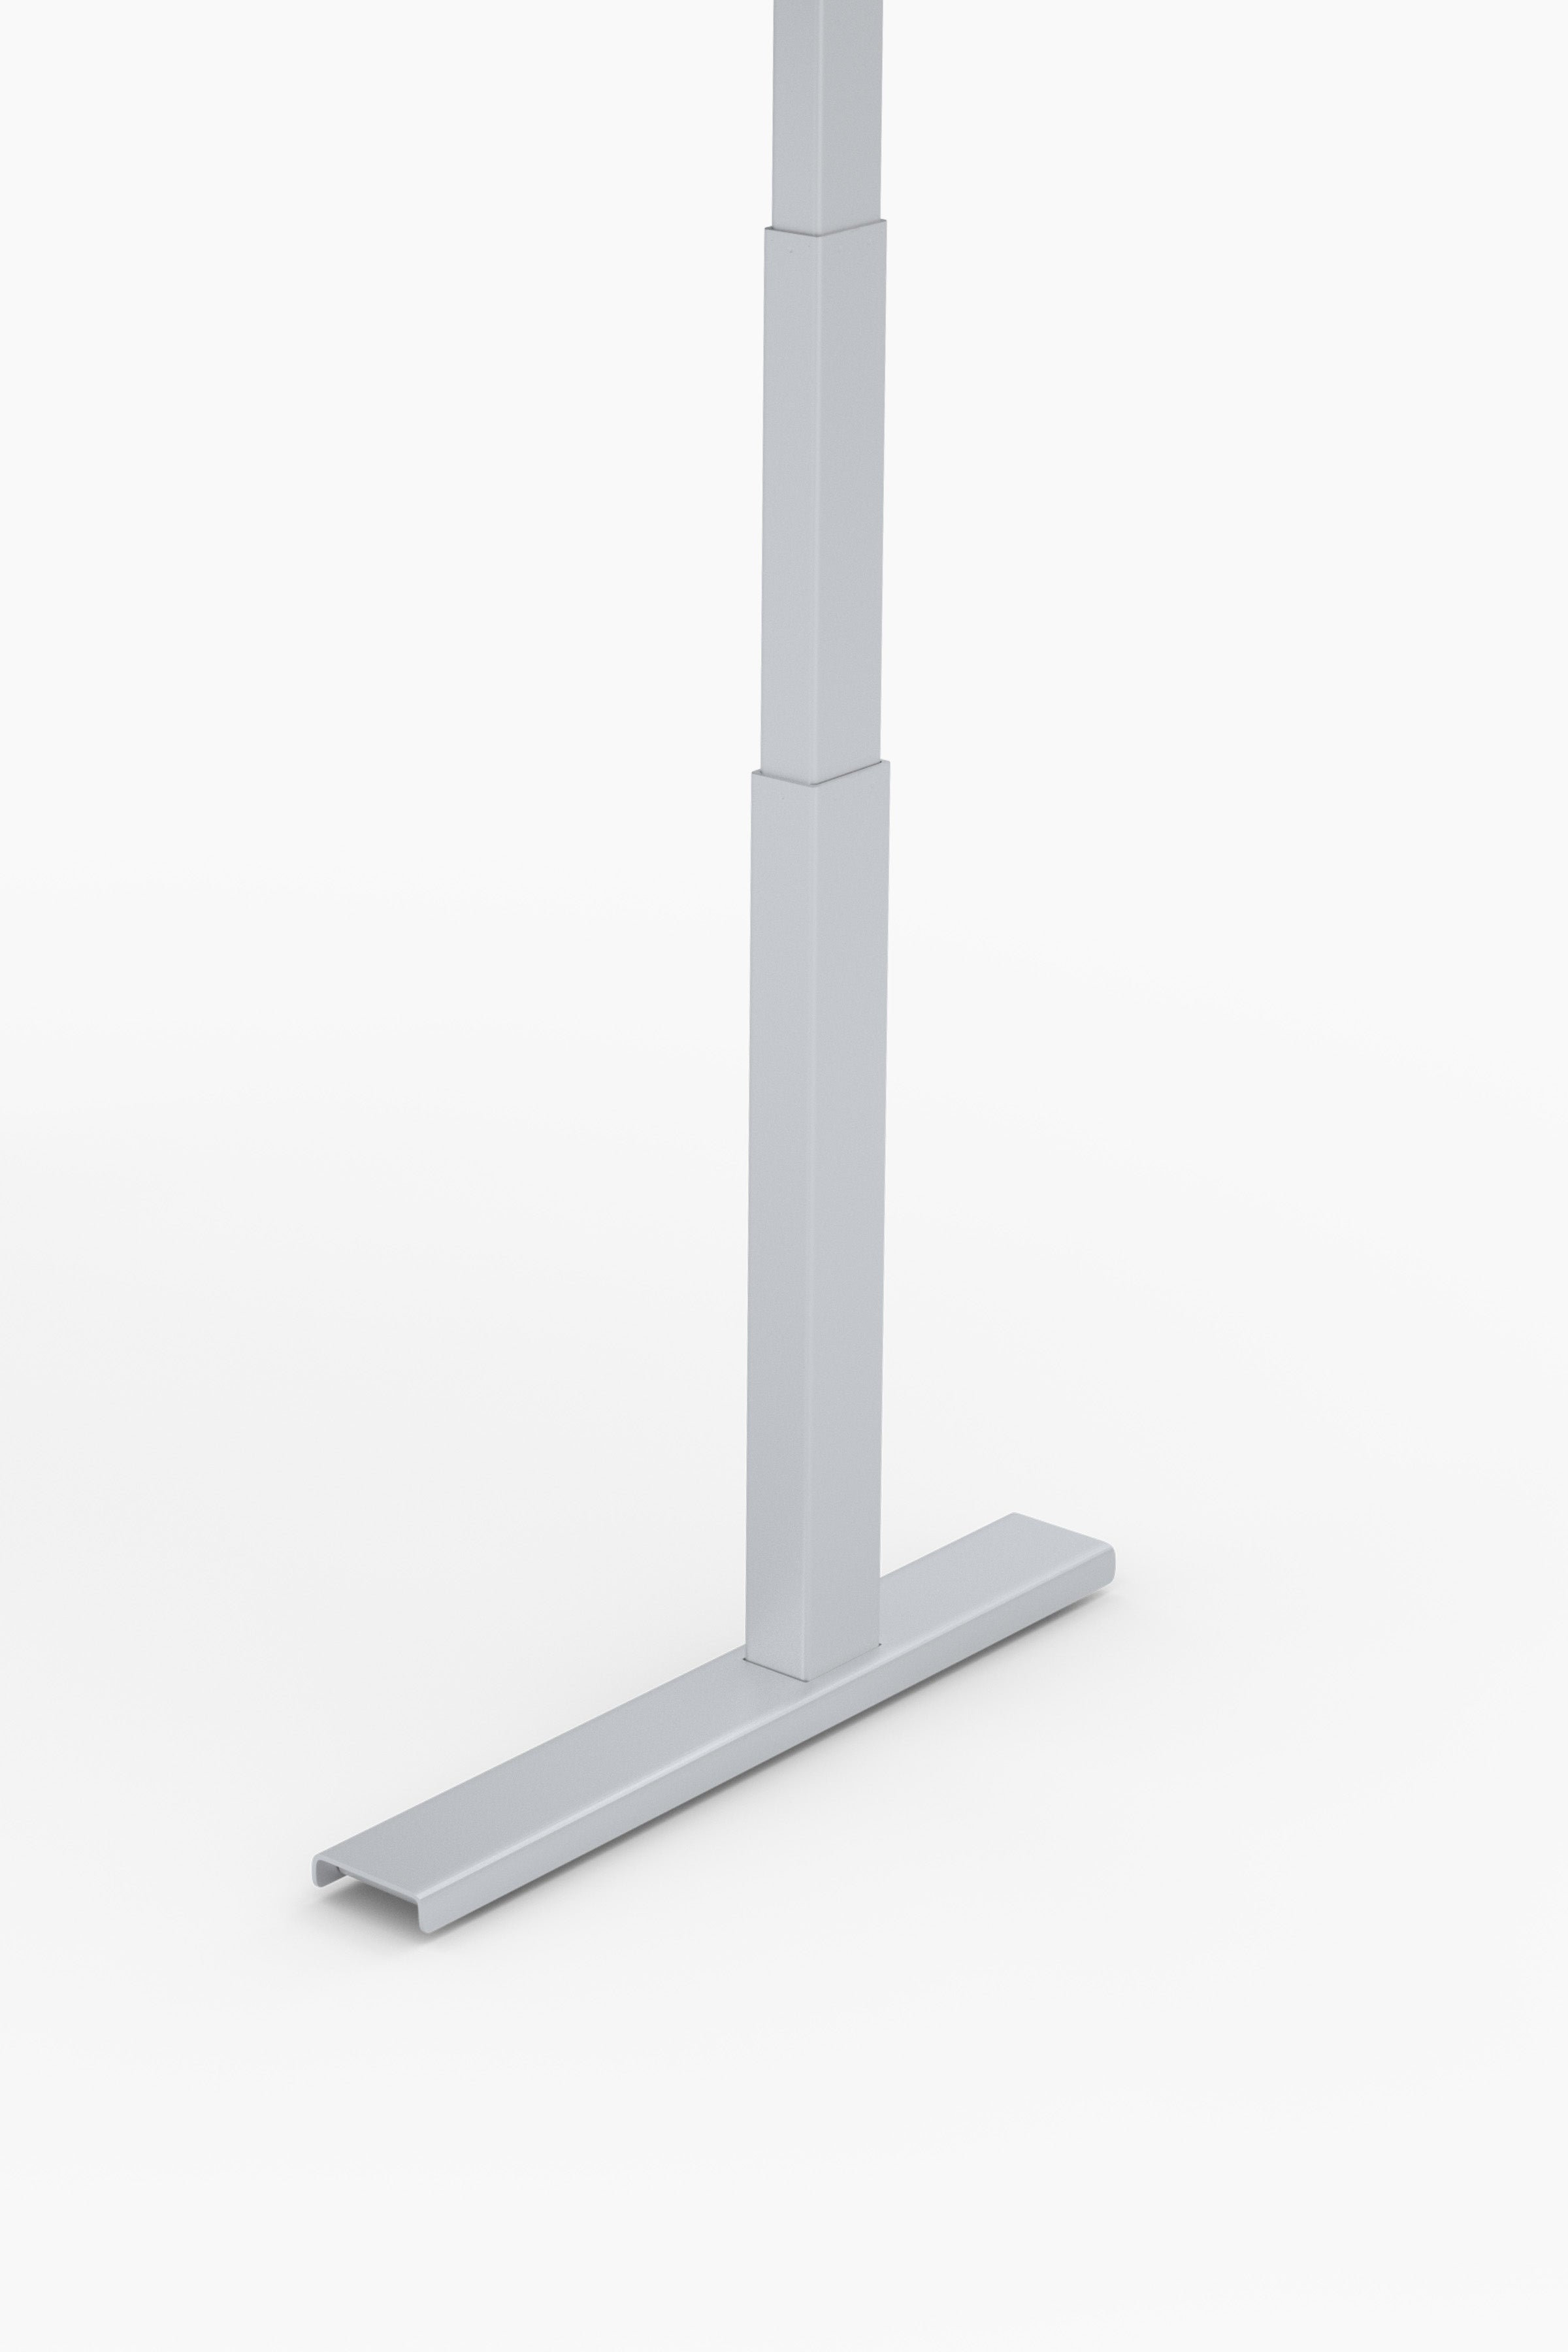 Stupendous Updesk Pro Upwrite Commercial Grade Electric Adjustable Standing Desk White Small Download Free Architecture Designs Licukmadebymaigaardcom